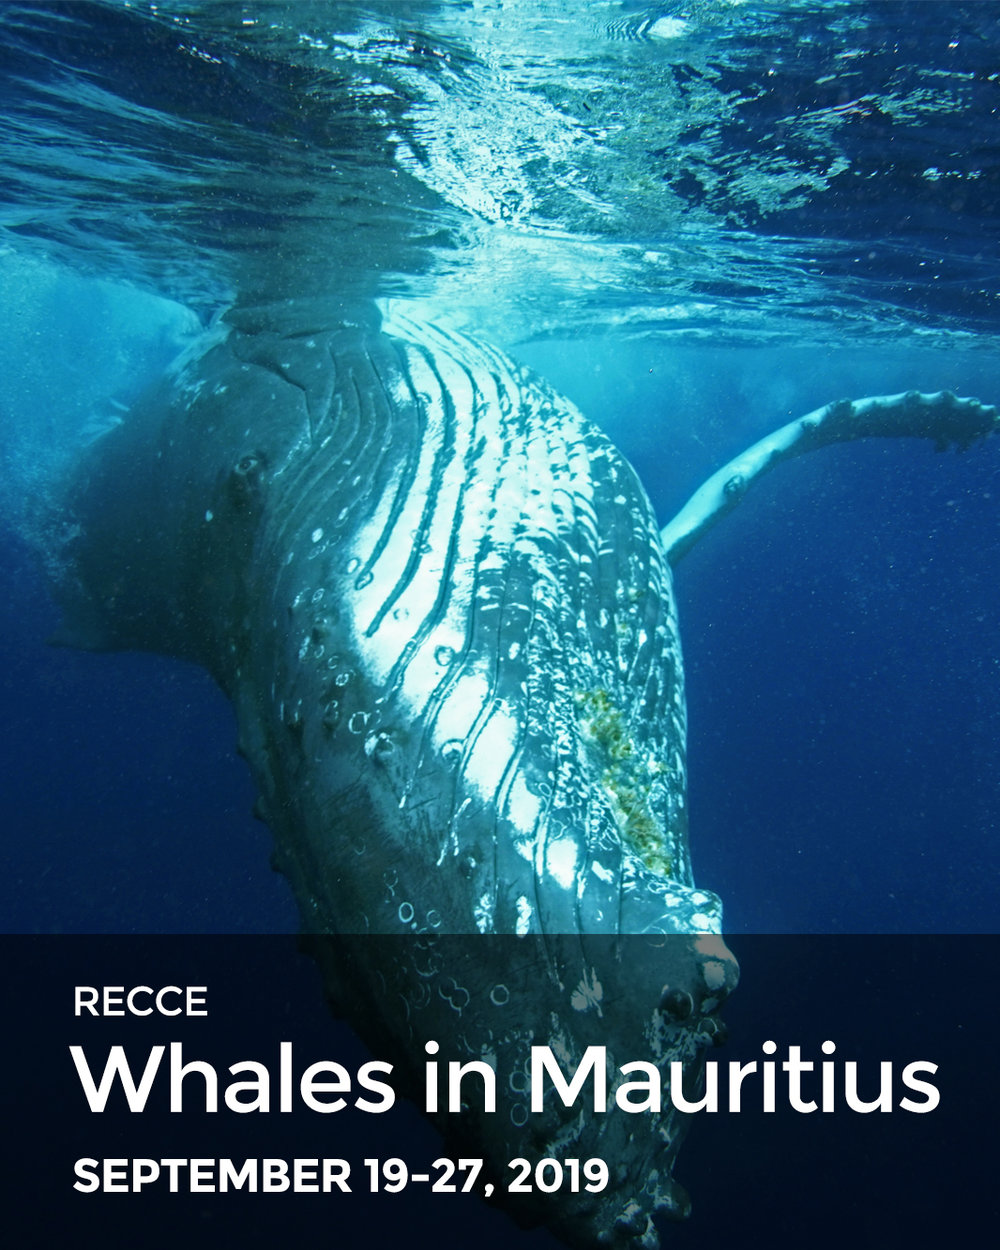 swim-with-whales-mauritius-humpback-whales-sperm-whales-freediving-inertia-network.jpg